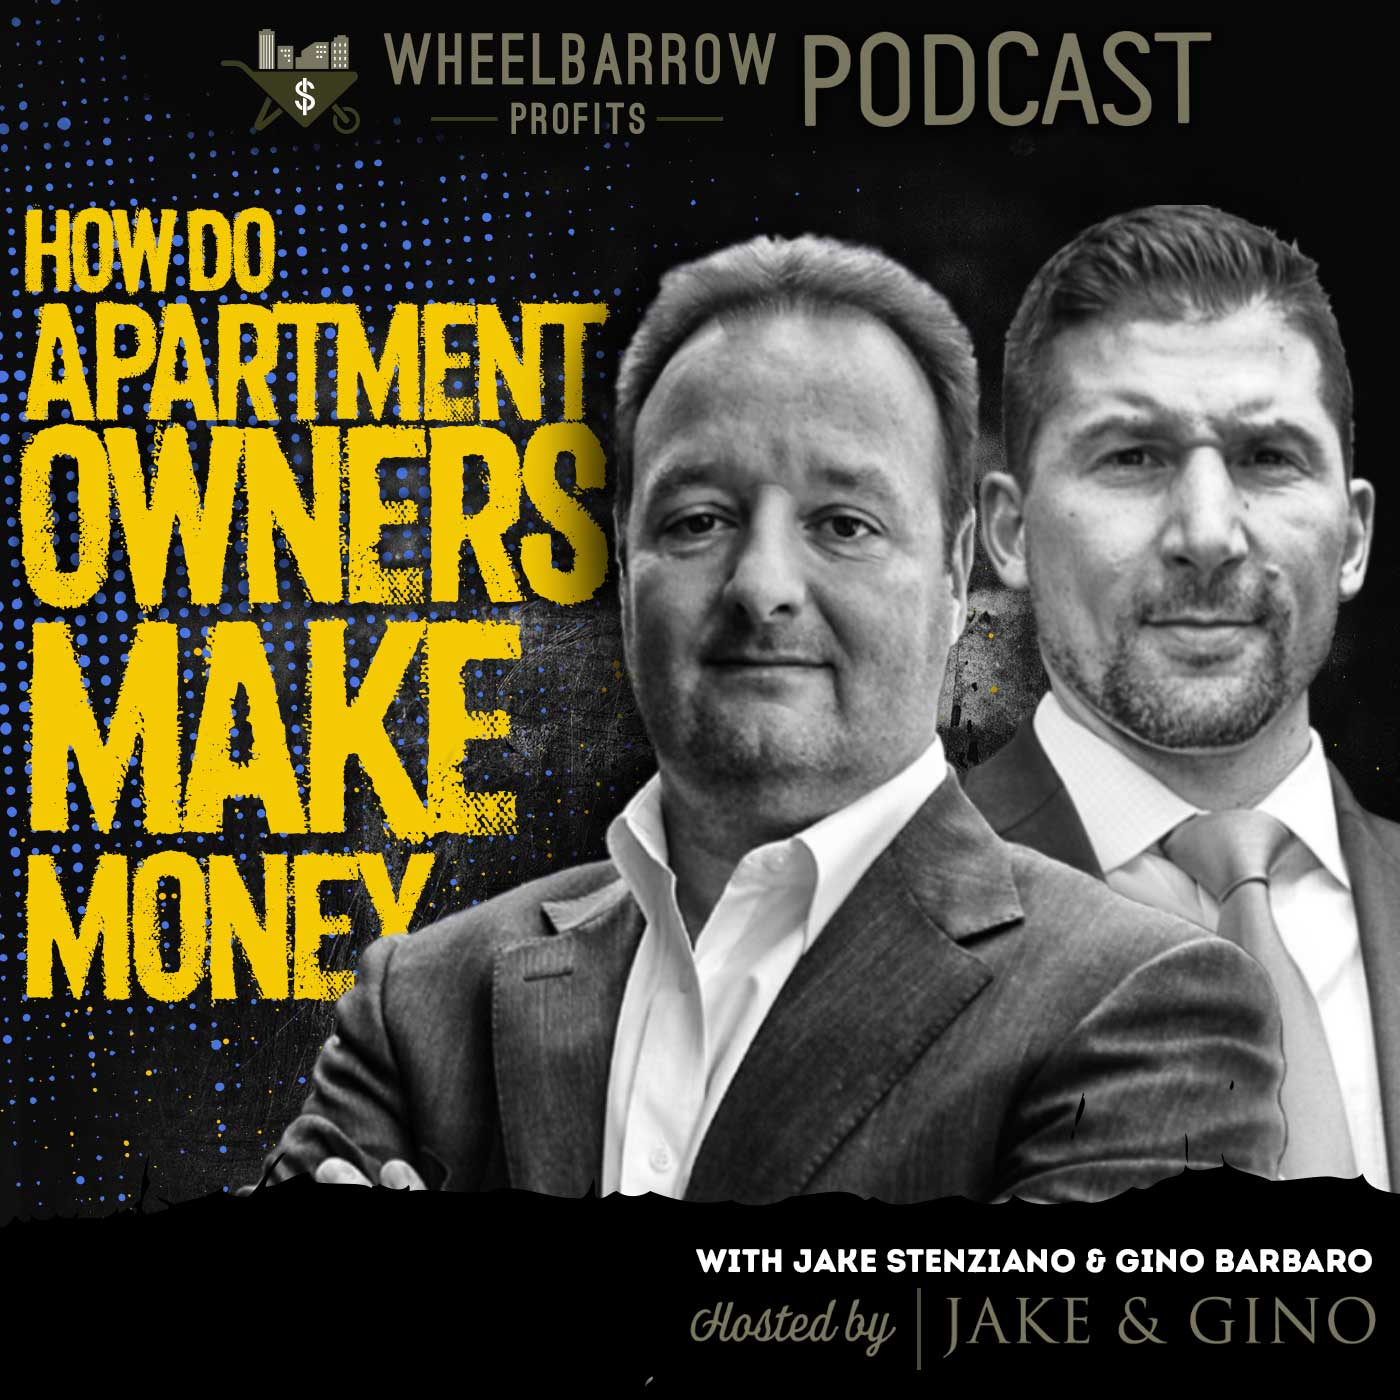 WBP - How Do Apartment Owners Make Money with Jake & Gino